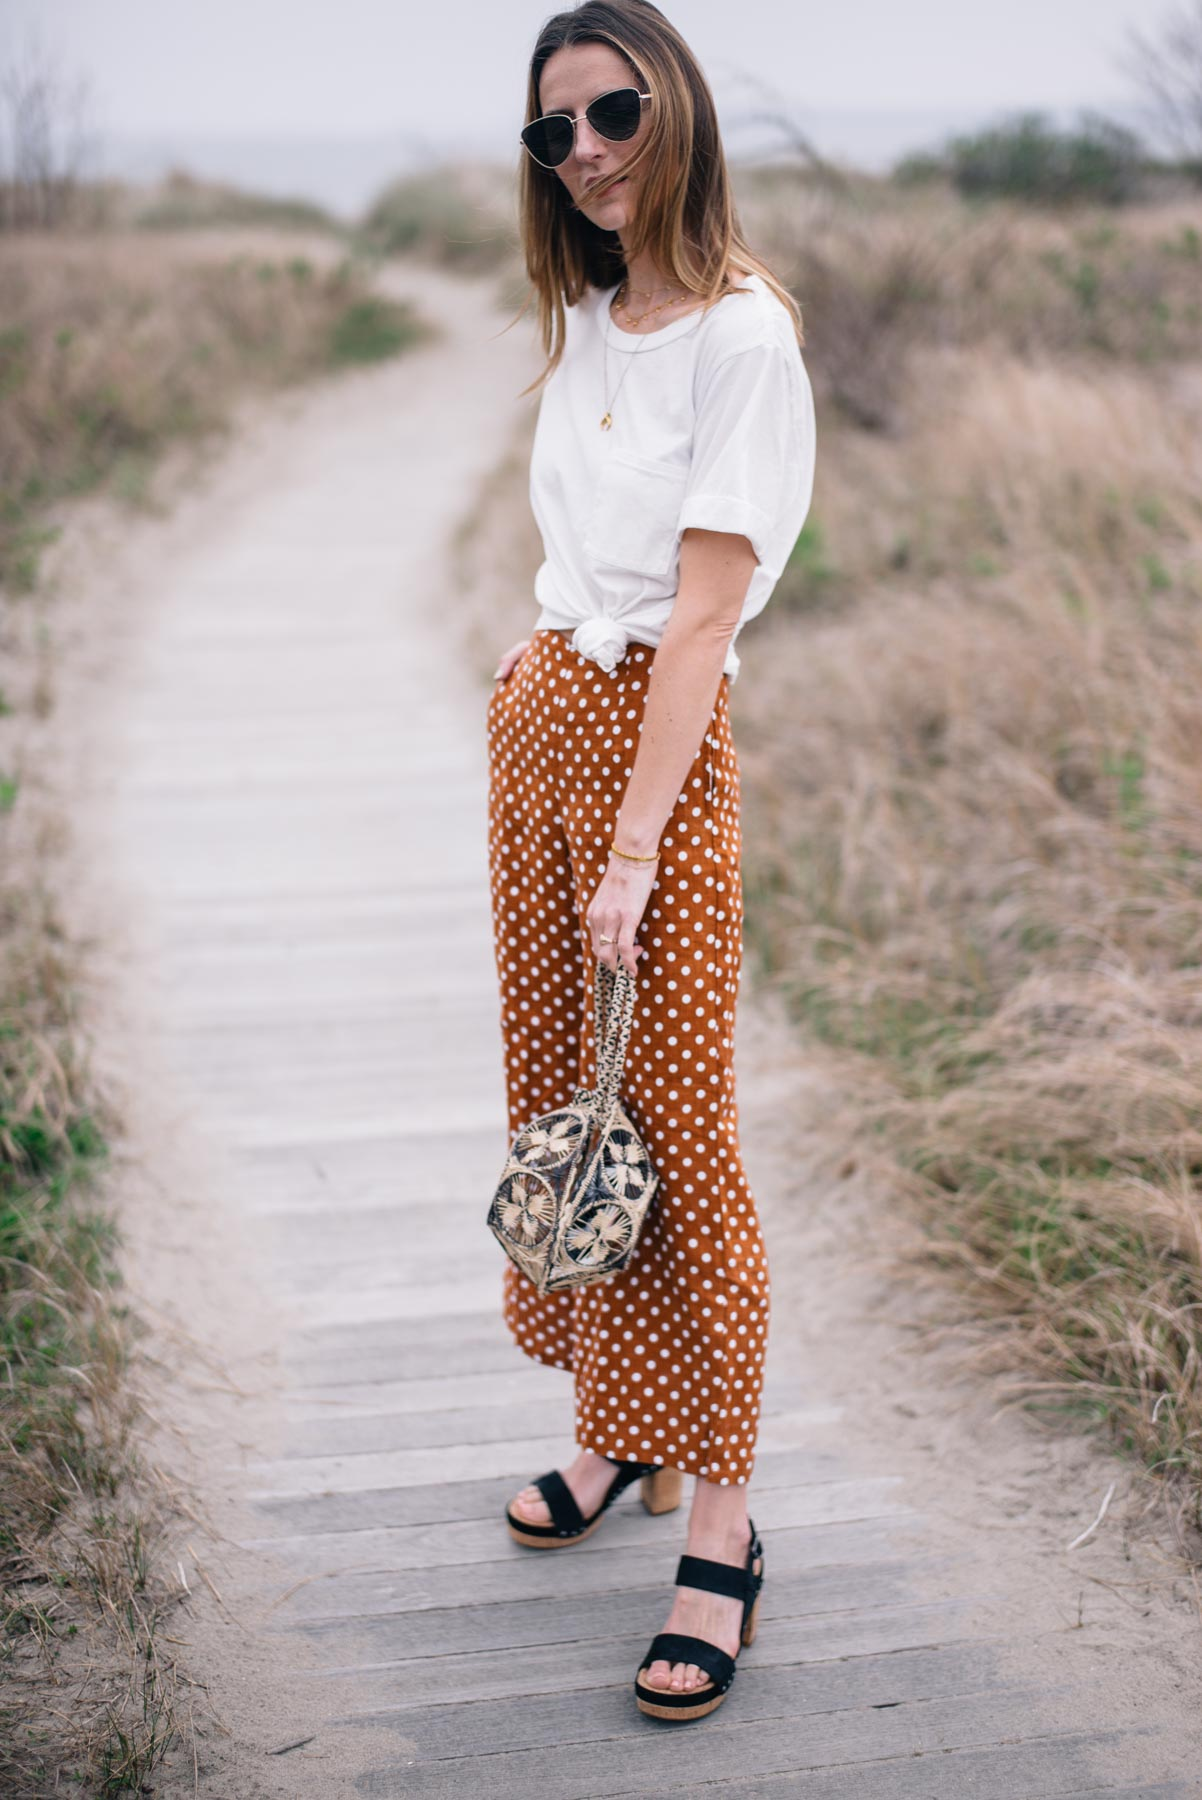 Jess Ann Kirby styles Faithfull wide leg polka dot pants from Anthropologie for a casual spring look